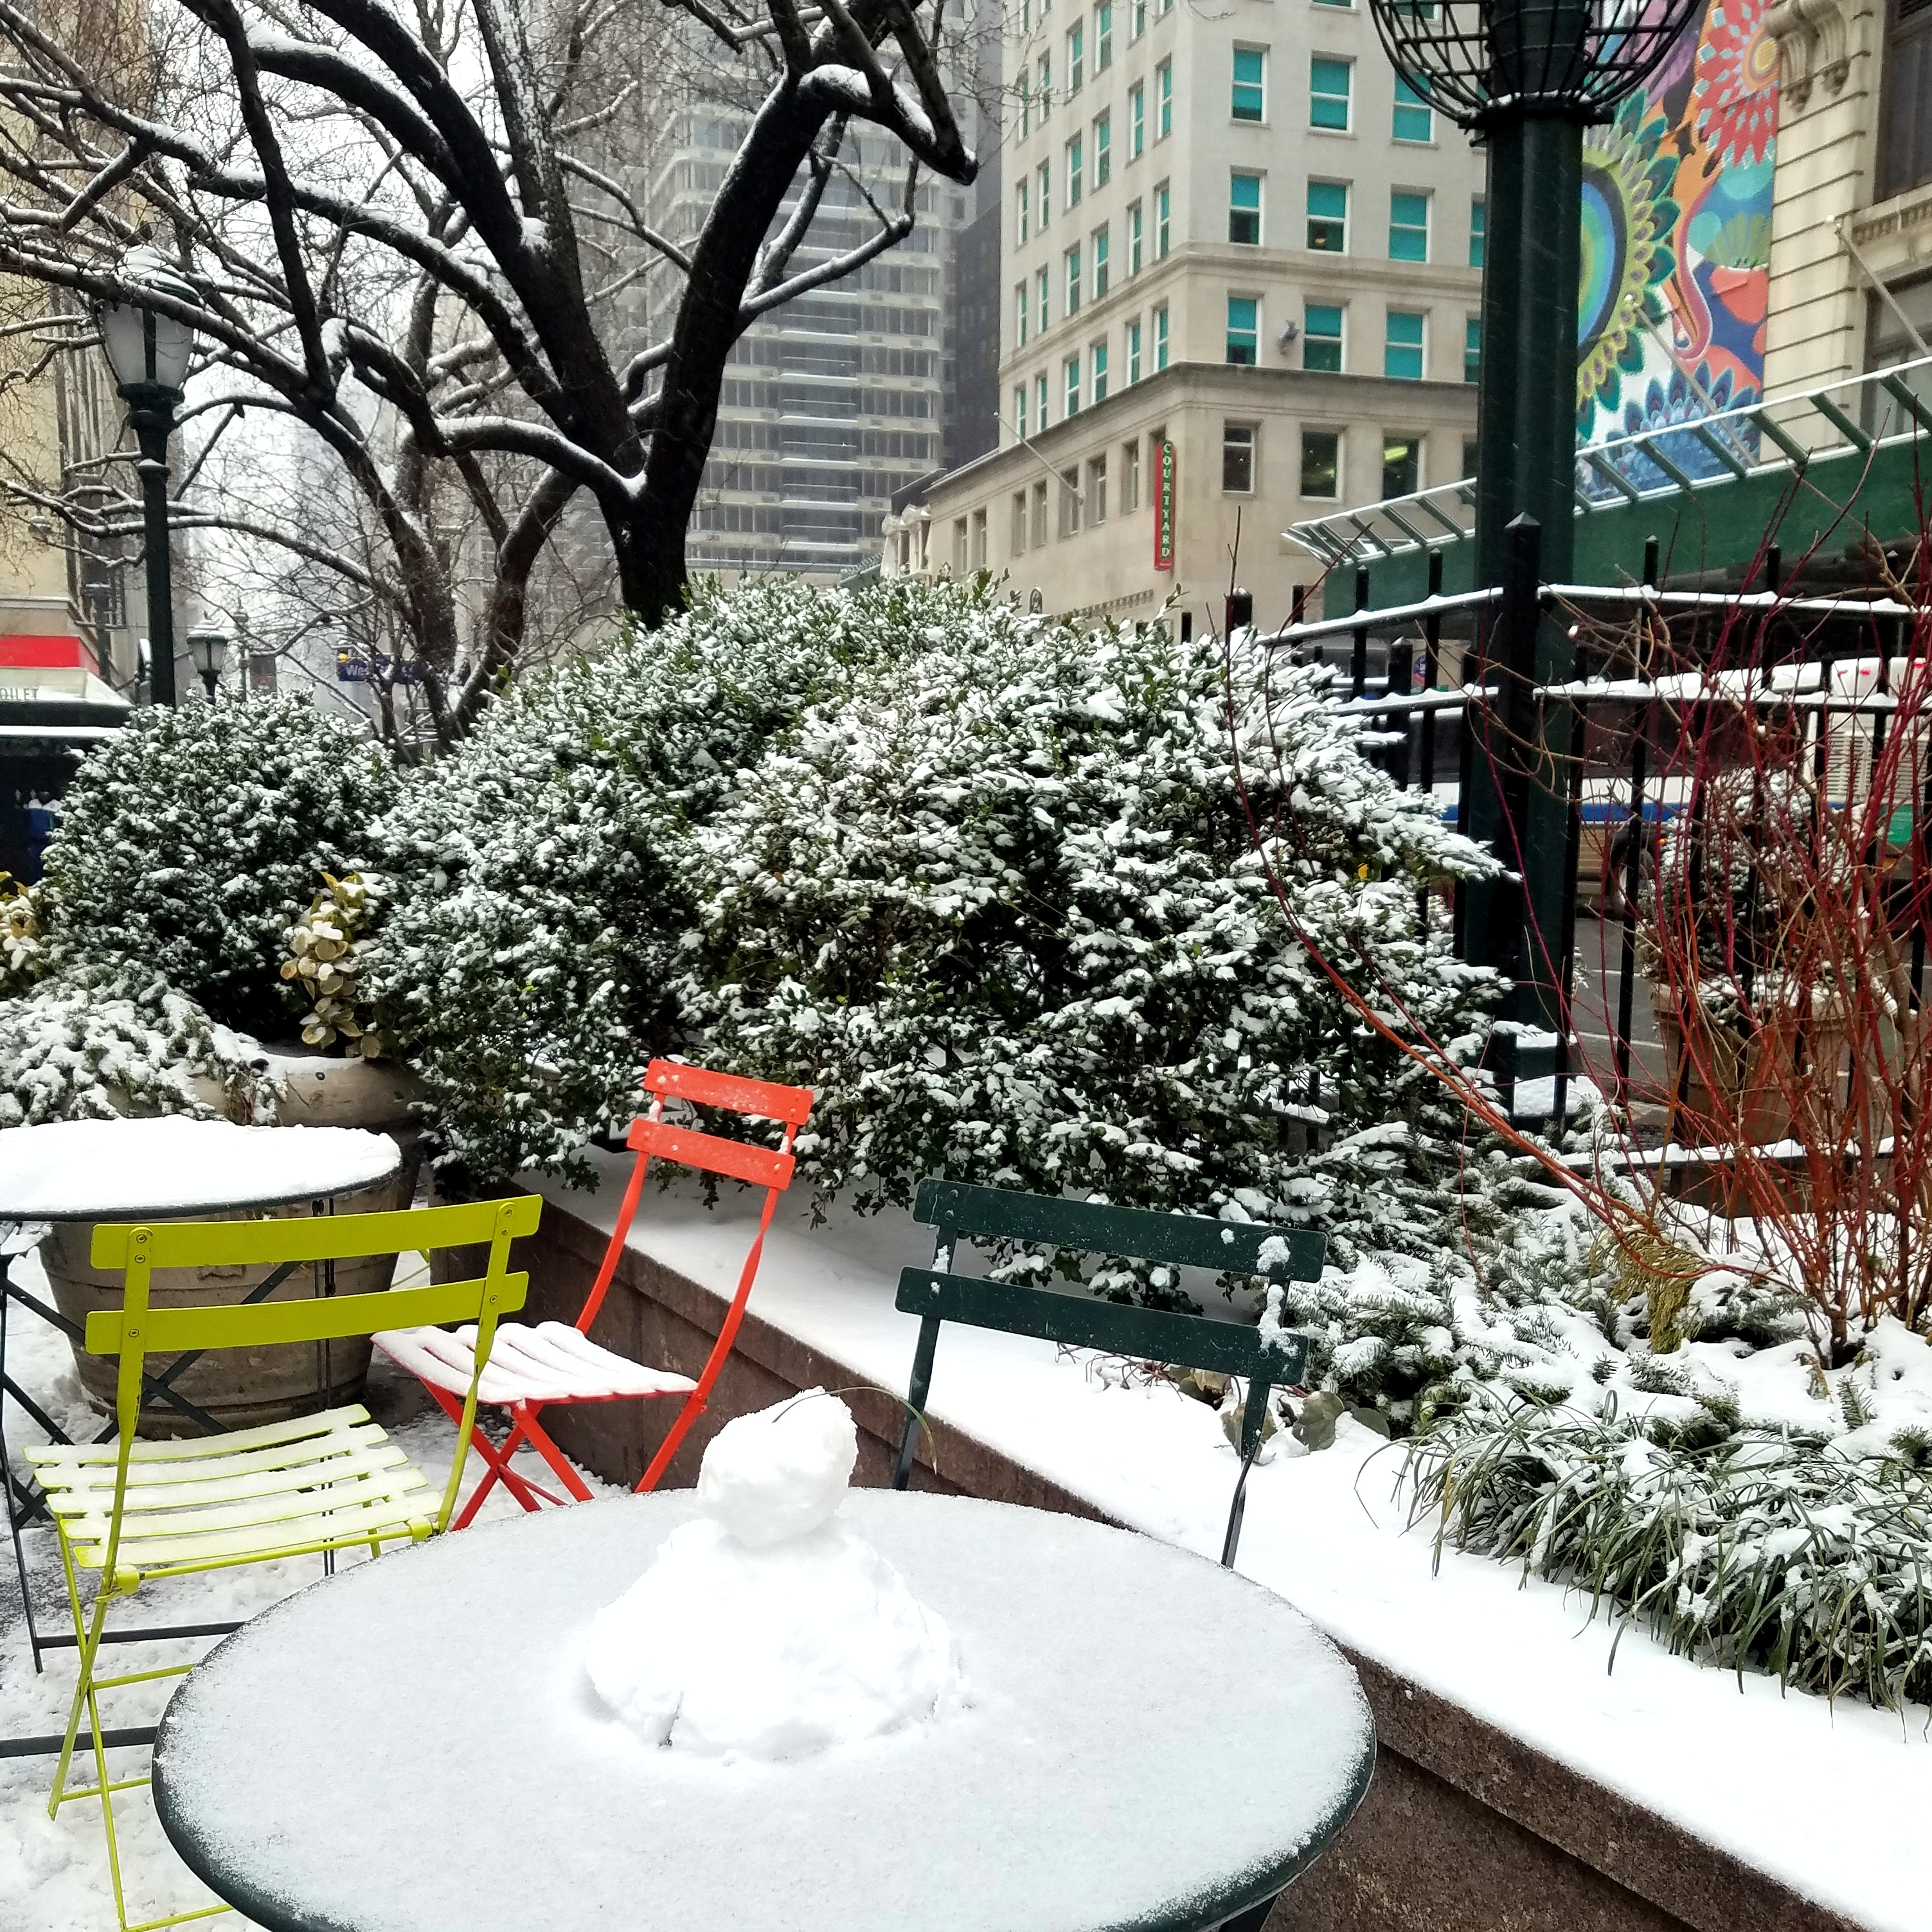 a snowy day in herald square, midtown manhattan, photo by LensMoments - Nichole Spates 2019